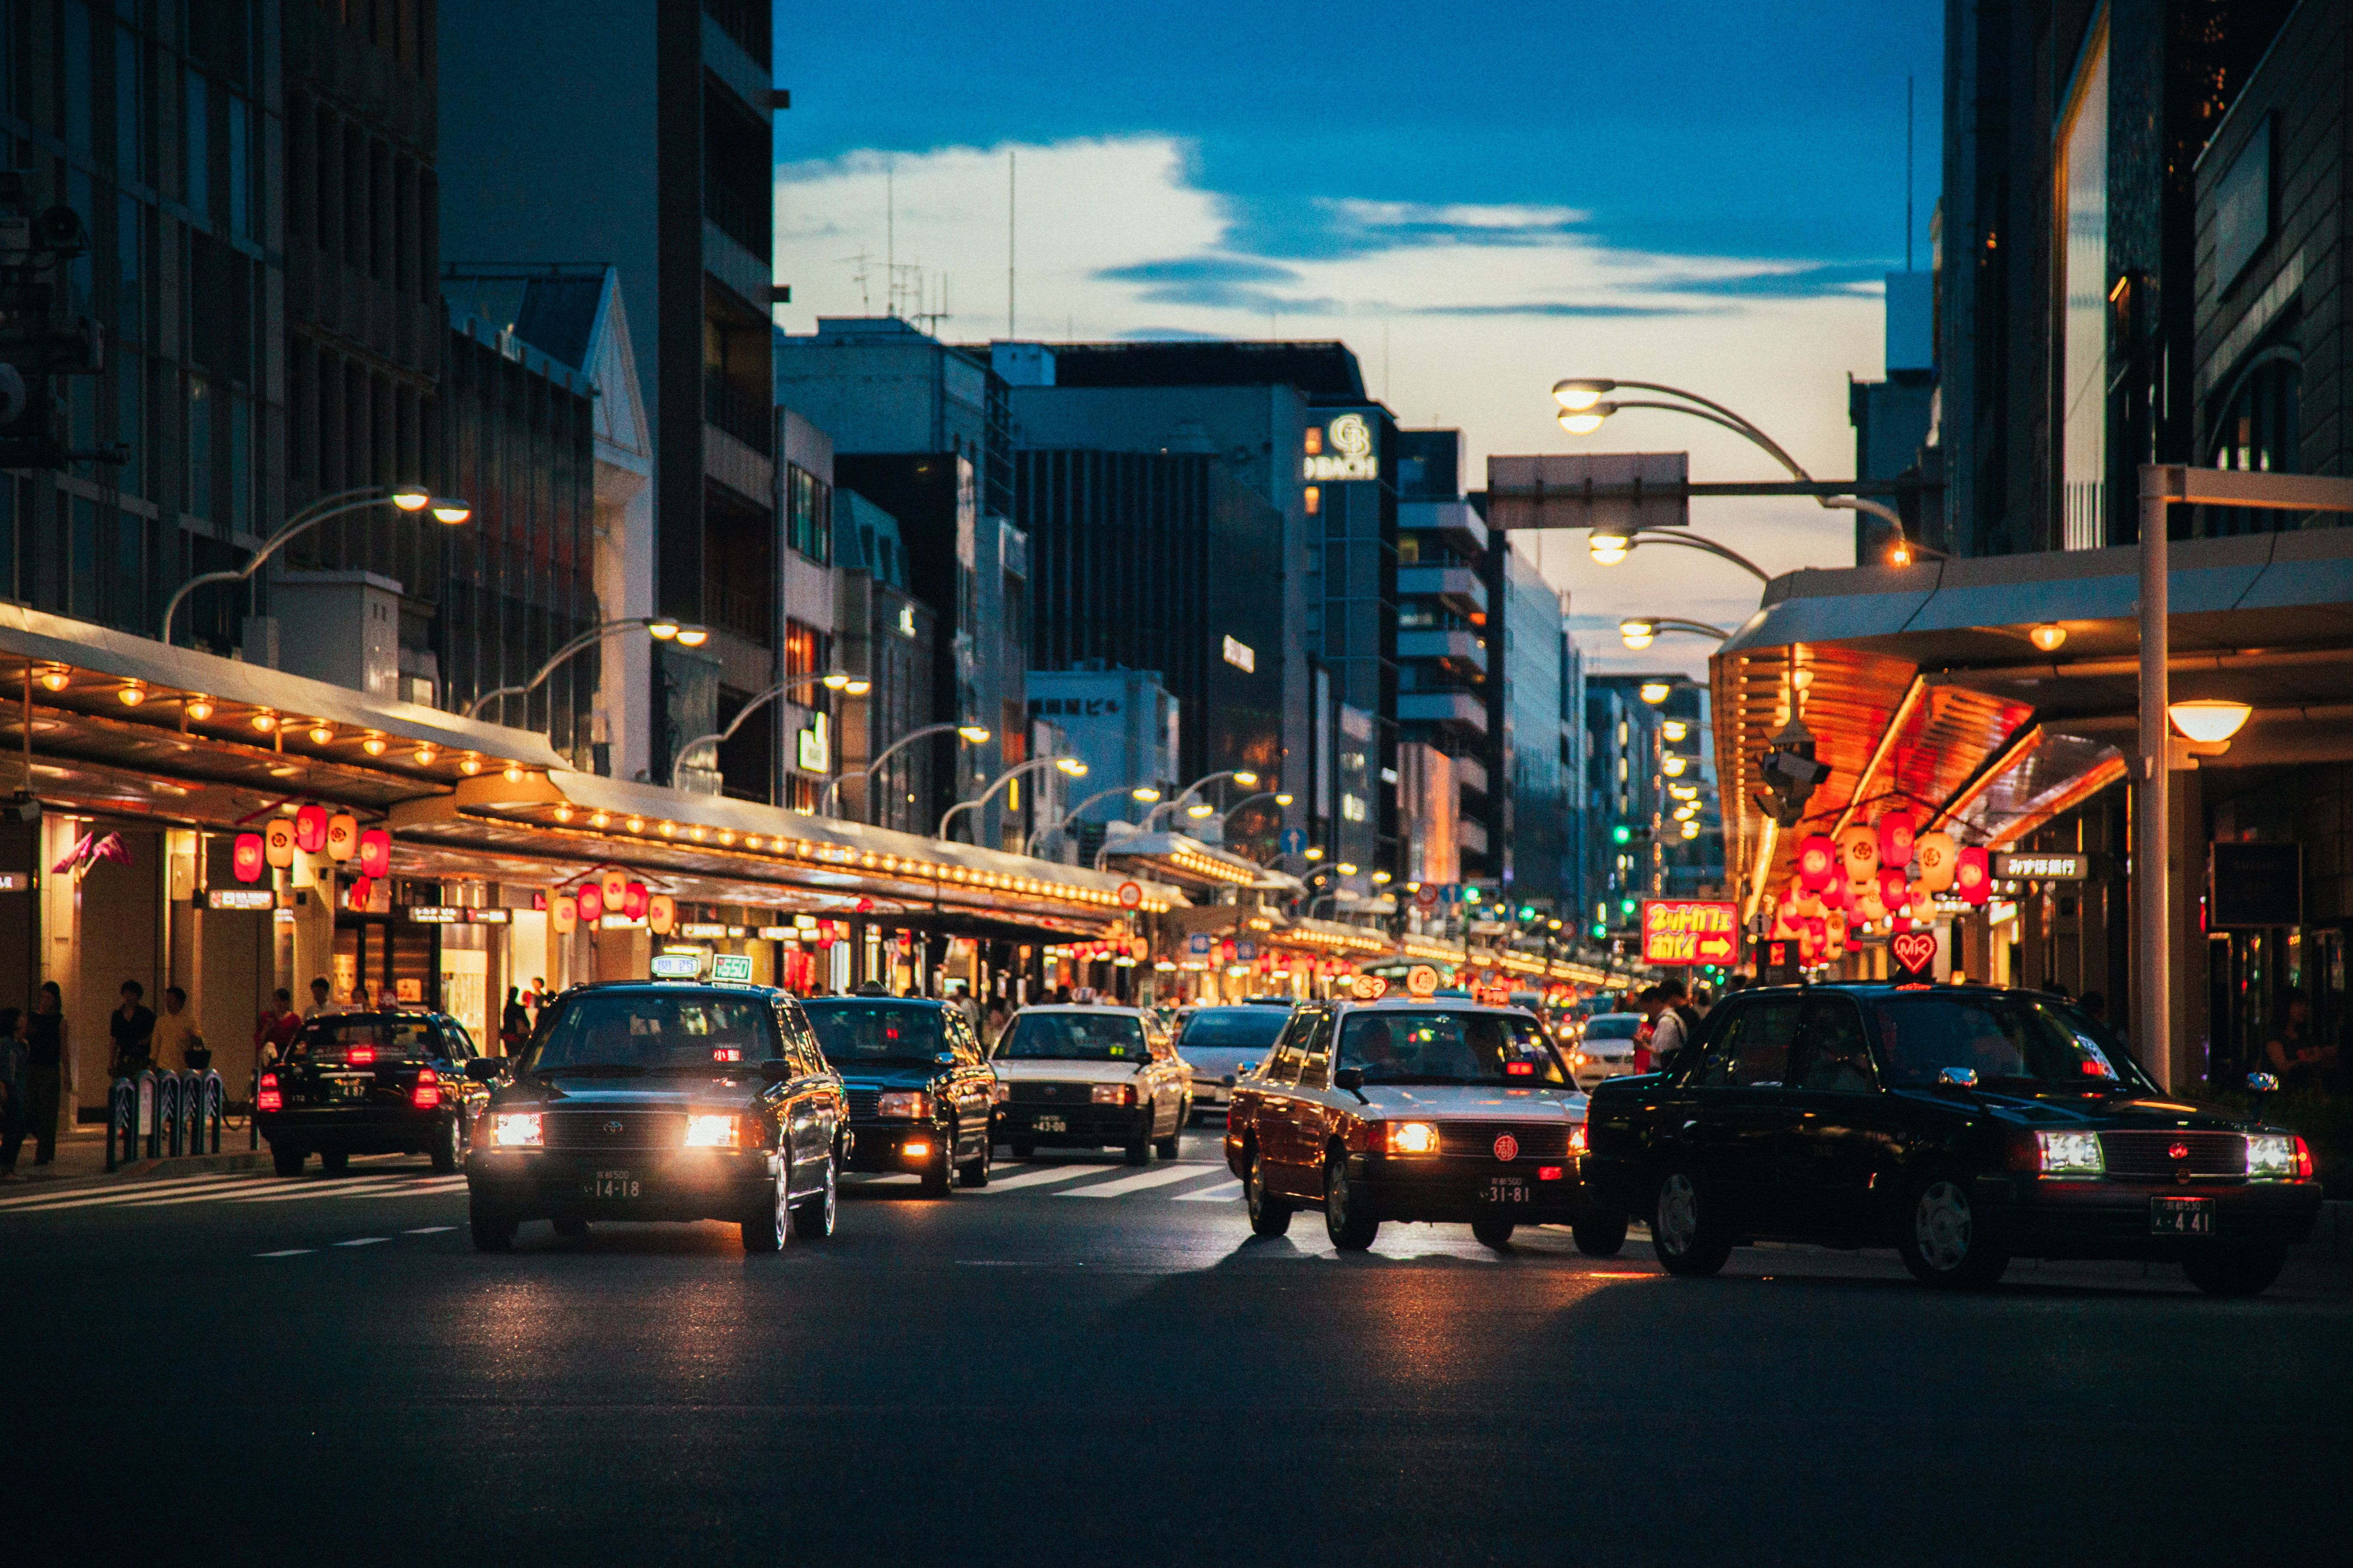 Car Vehicle Automobile Cars On Gray Cars On Gray Asphalt Road In The City During Nighttime Kyoto Car Photos Photo Kyoto City buildings road cars night street